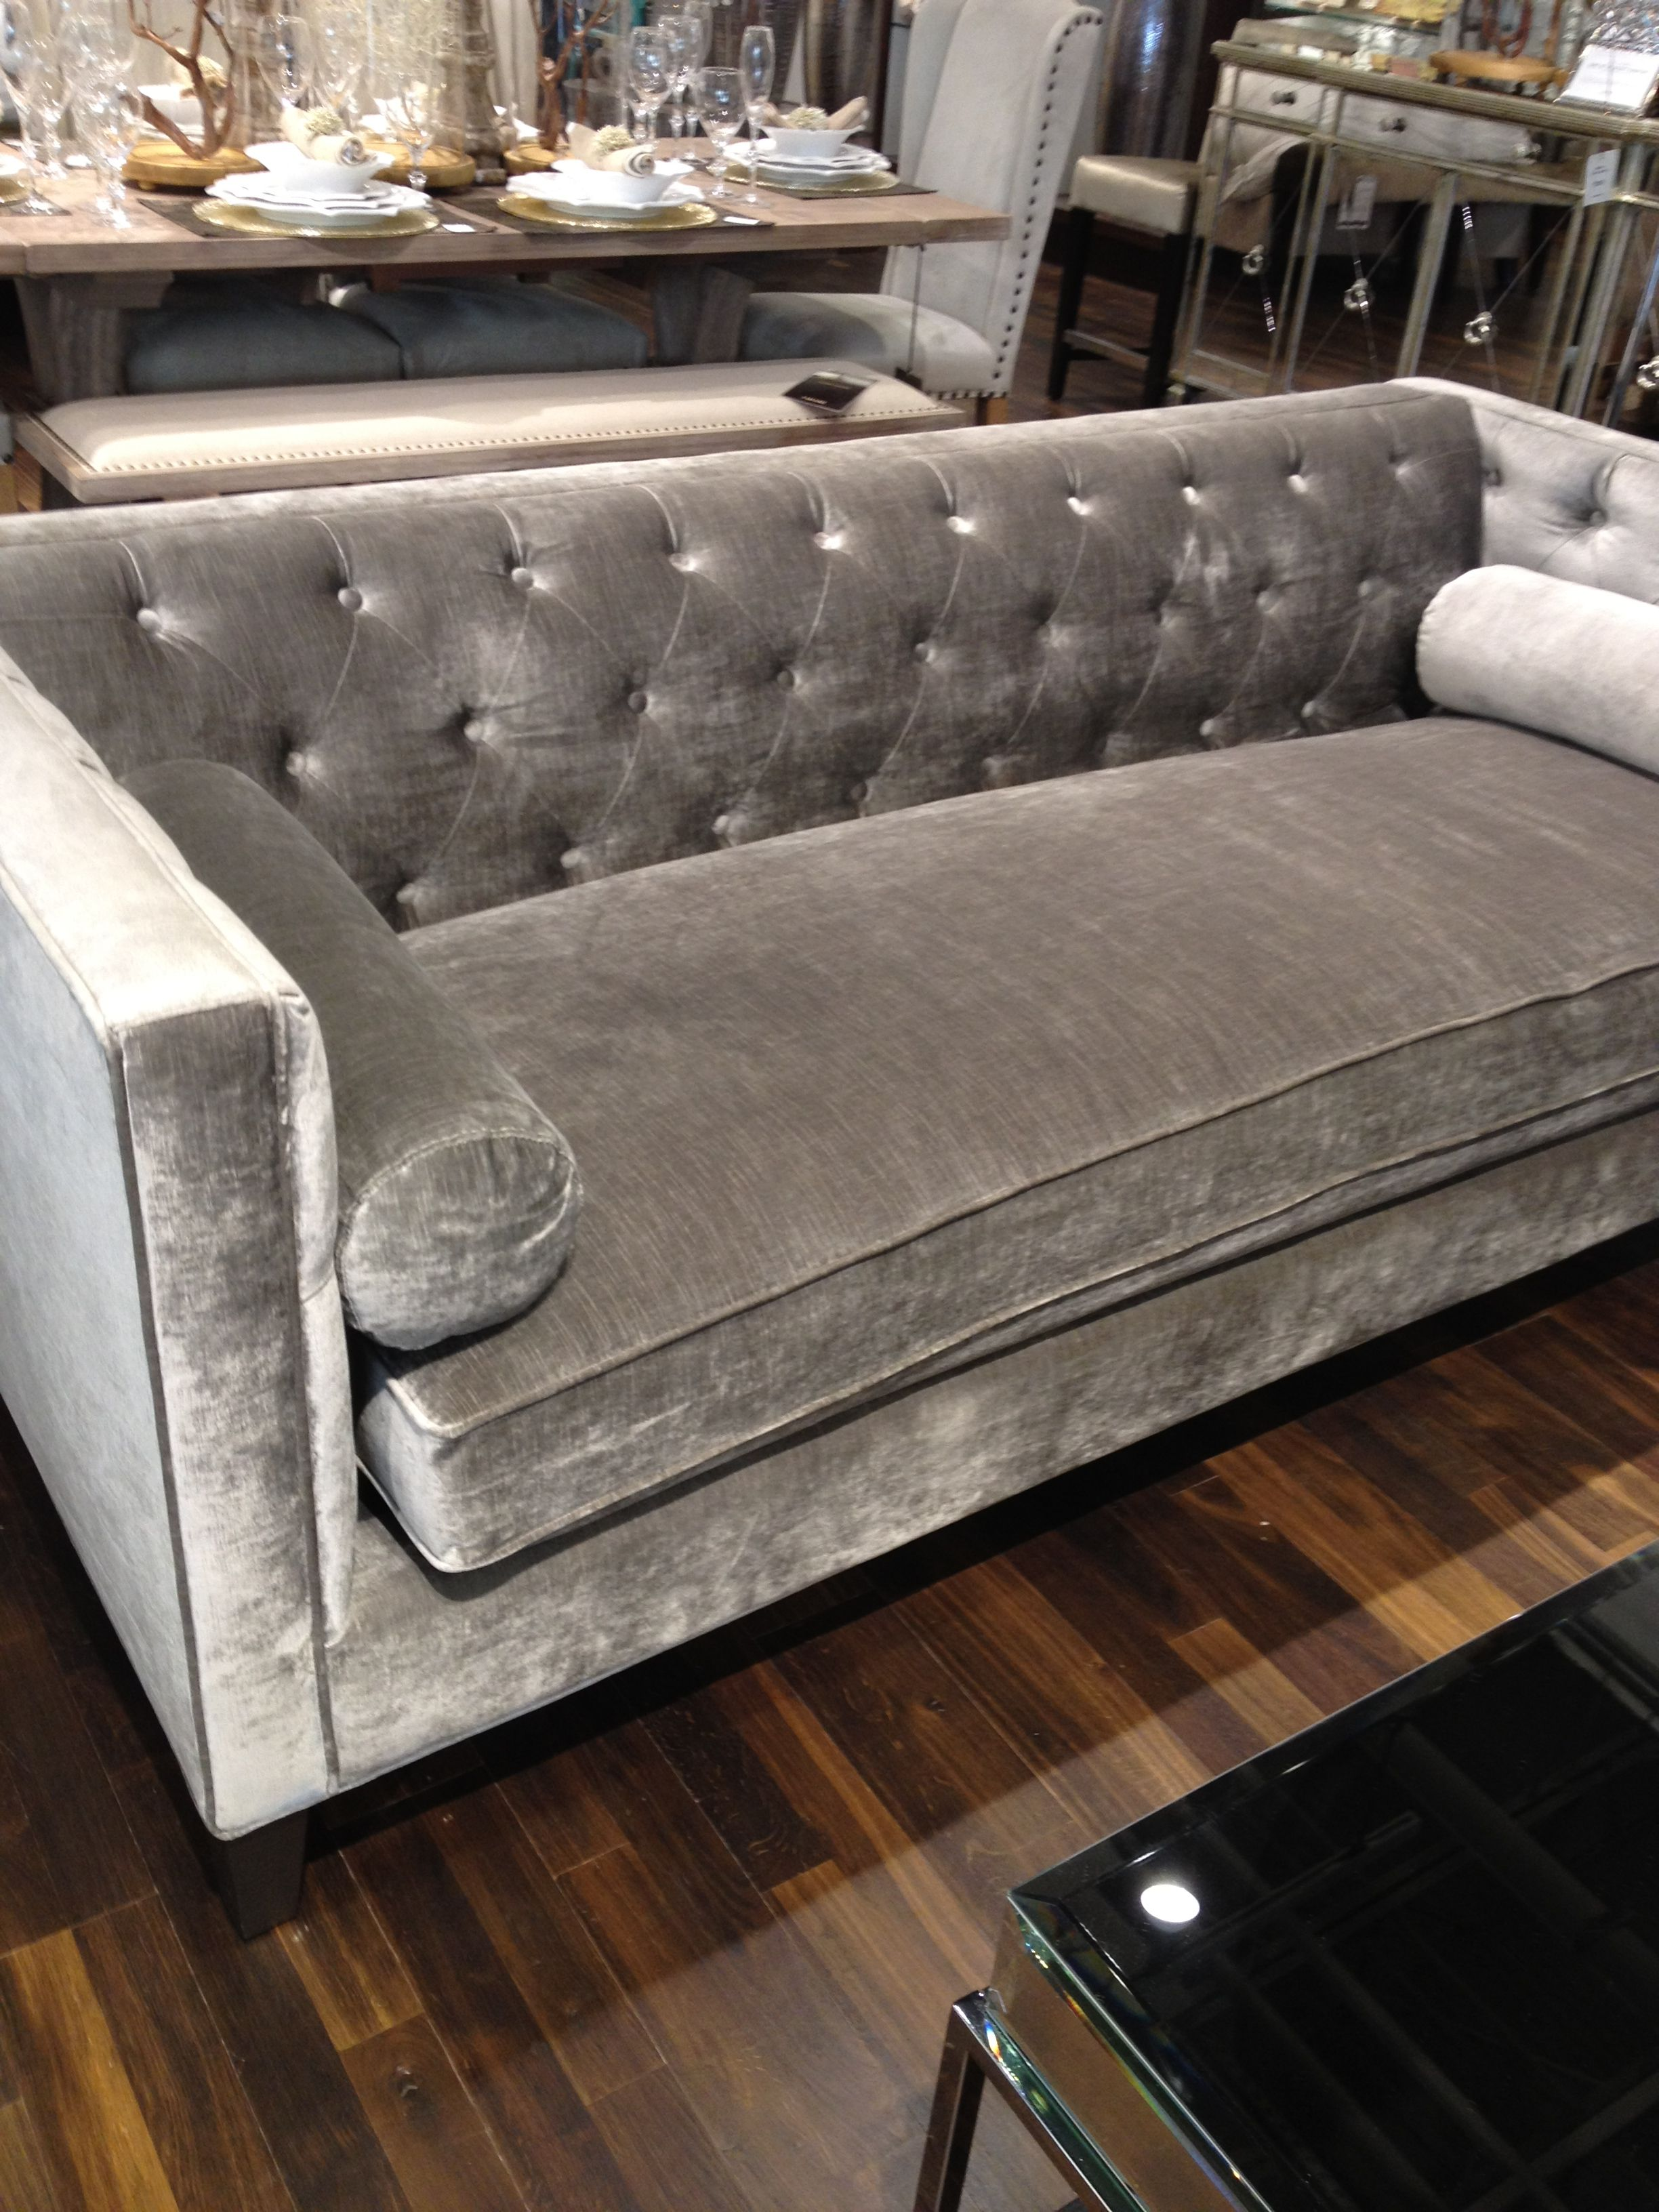 Tufted grey couch   Home  Living Areas   Pinterest   Grey couches     Tufted grey couch